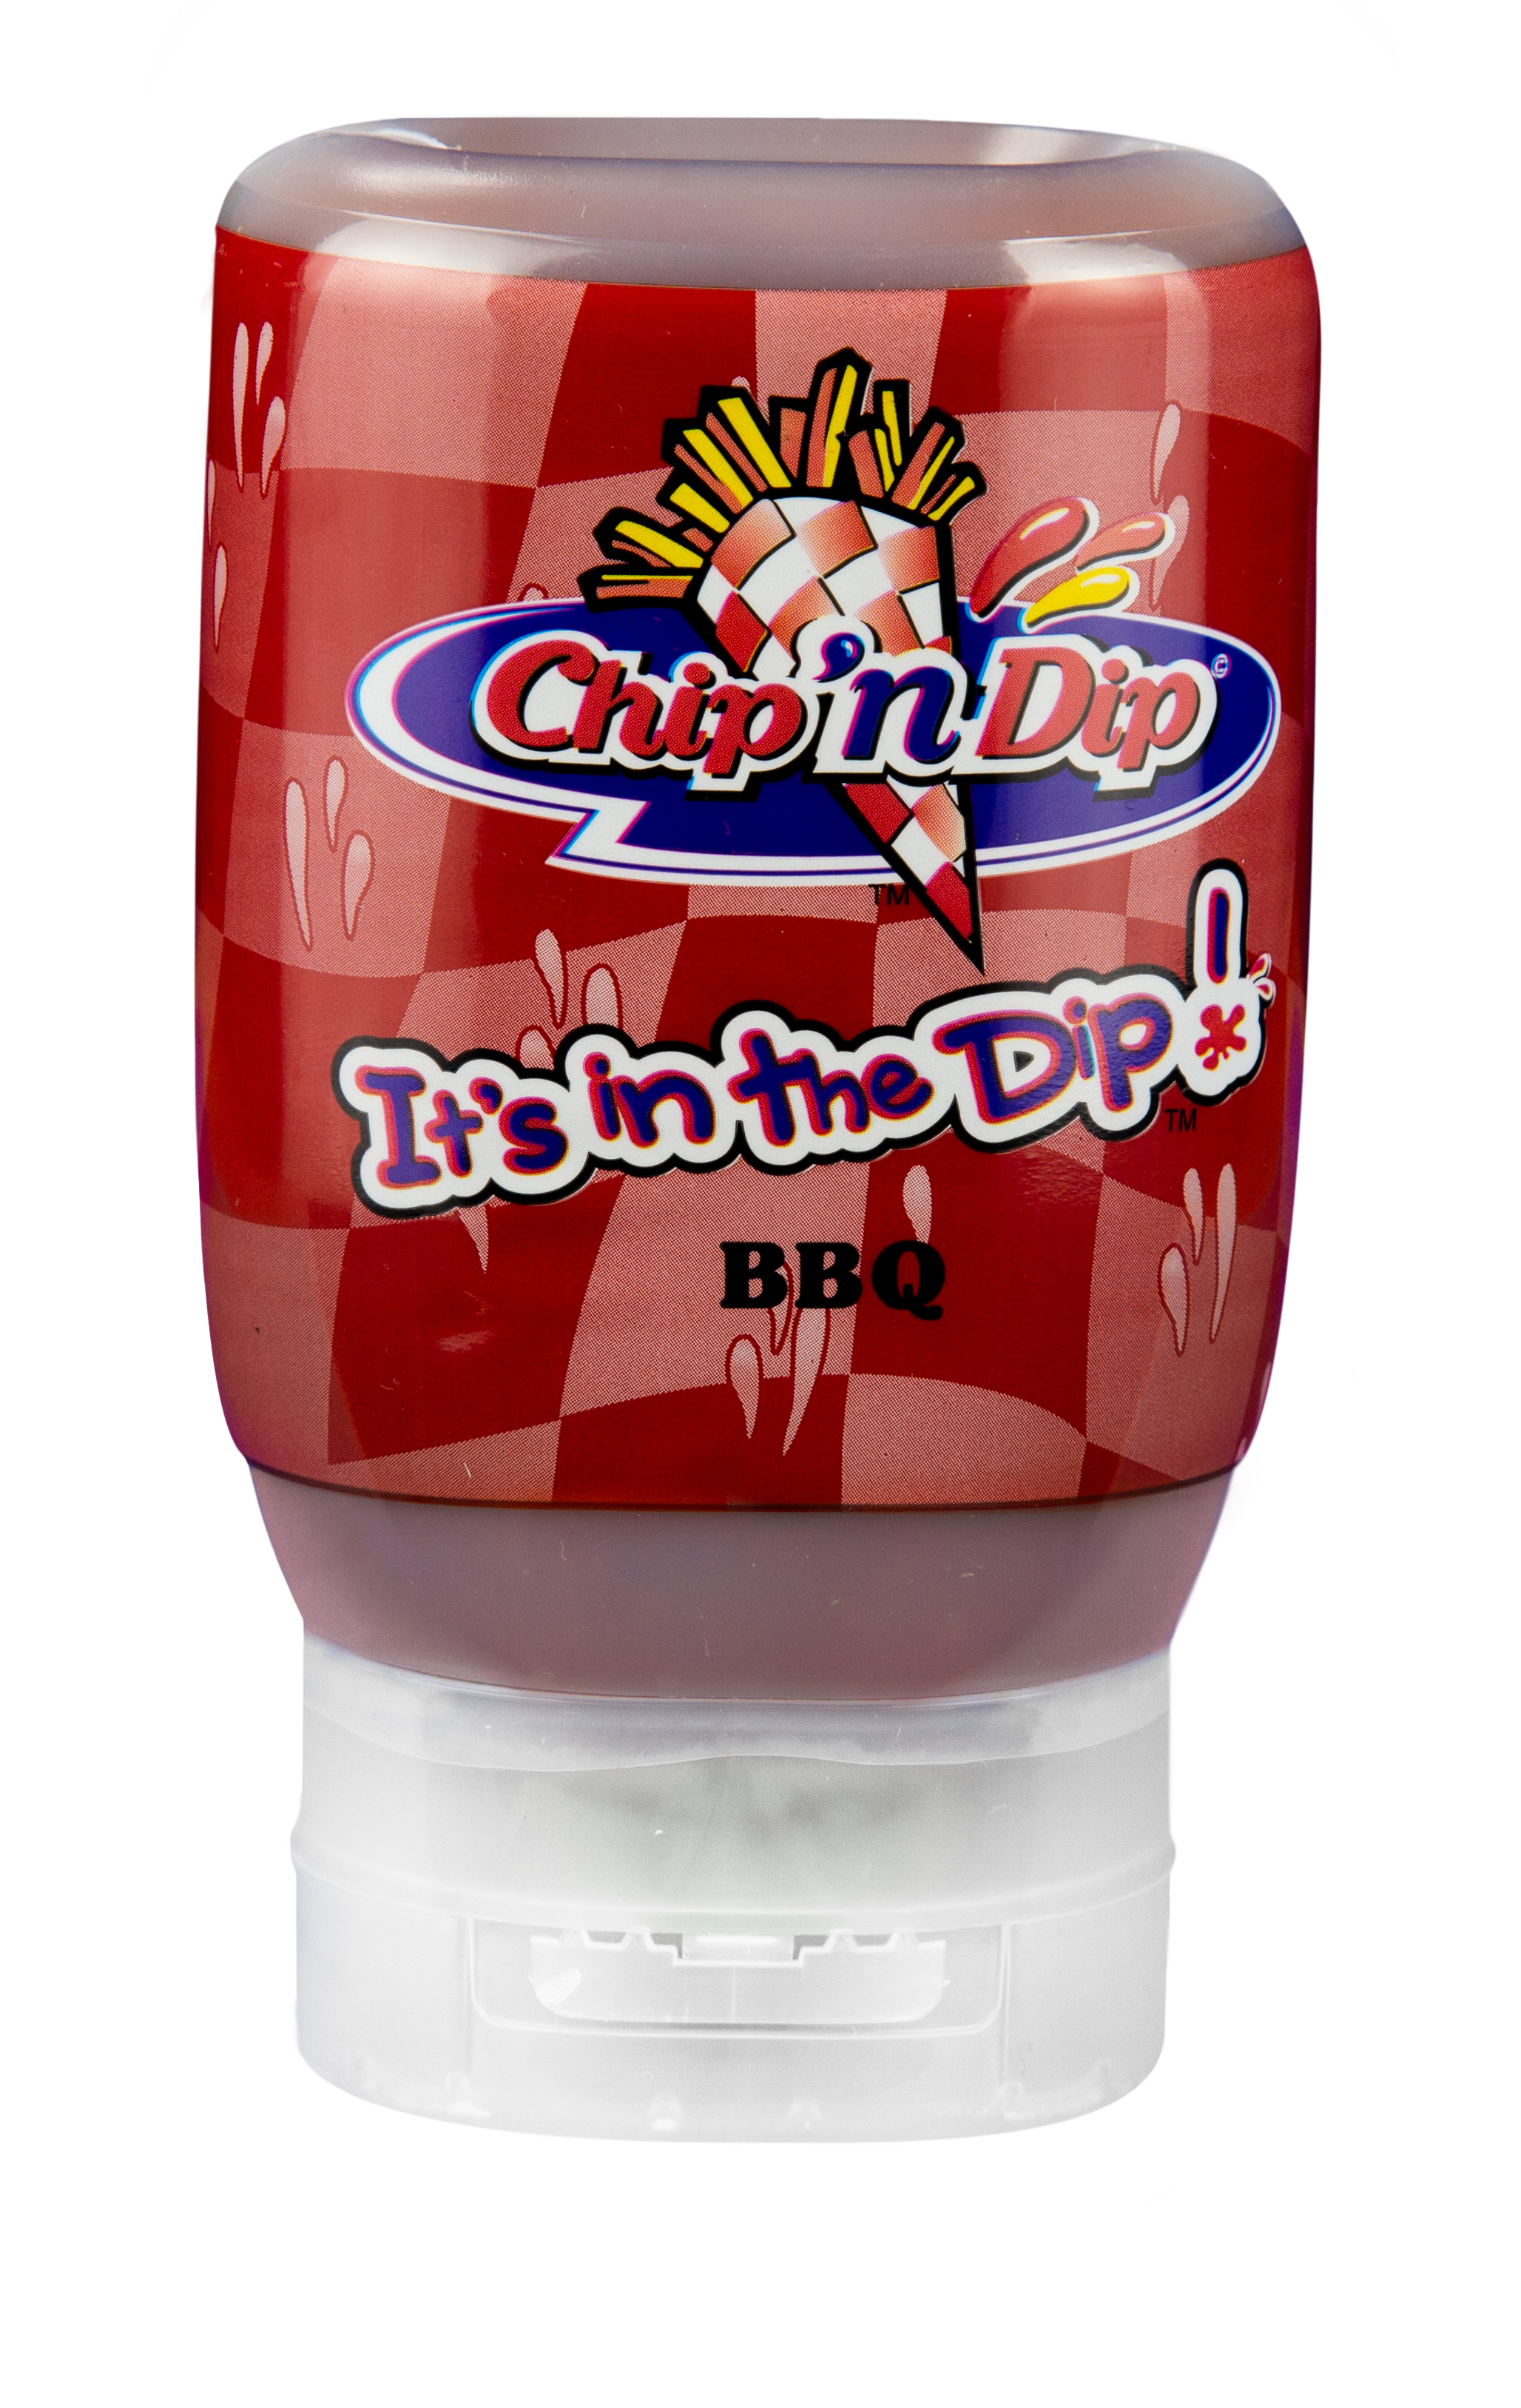 Chip 'n Dip BBQ Sauce in 250ml squeeze bottle